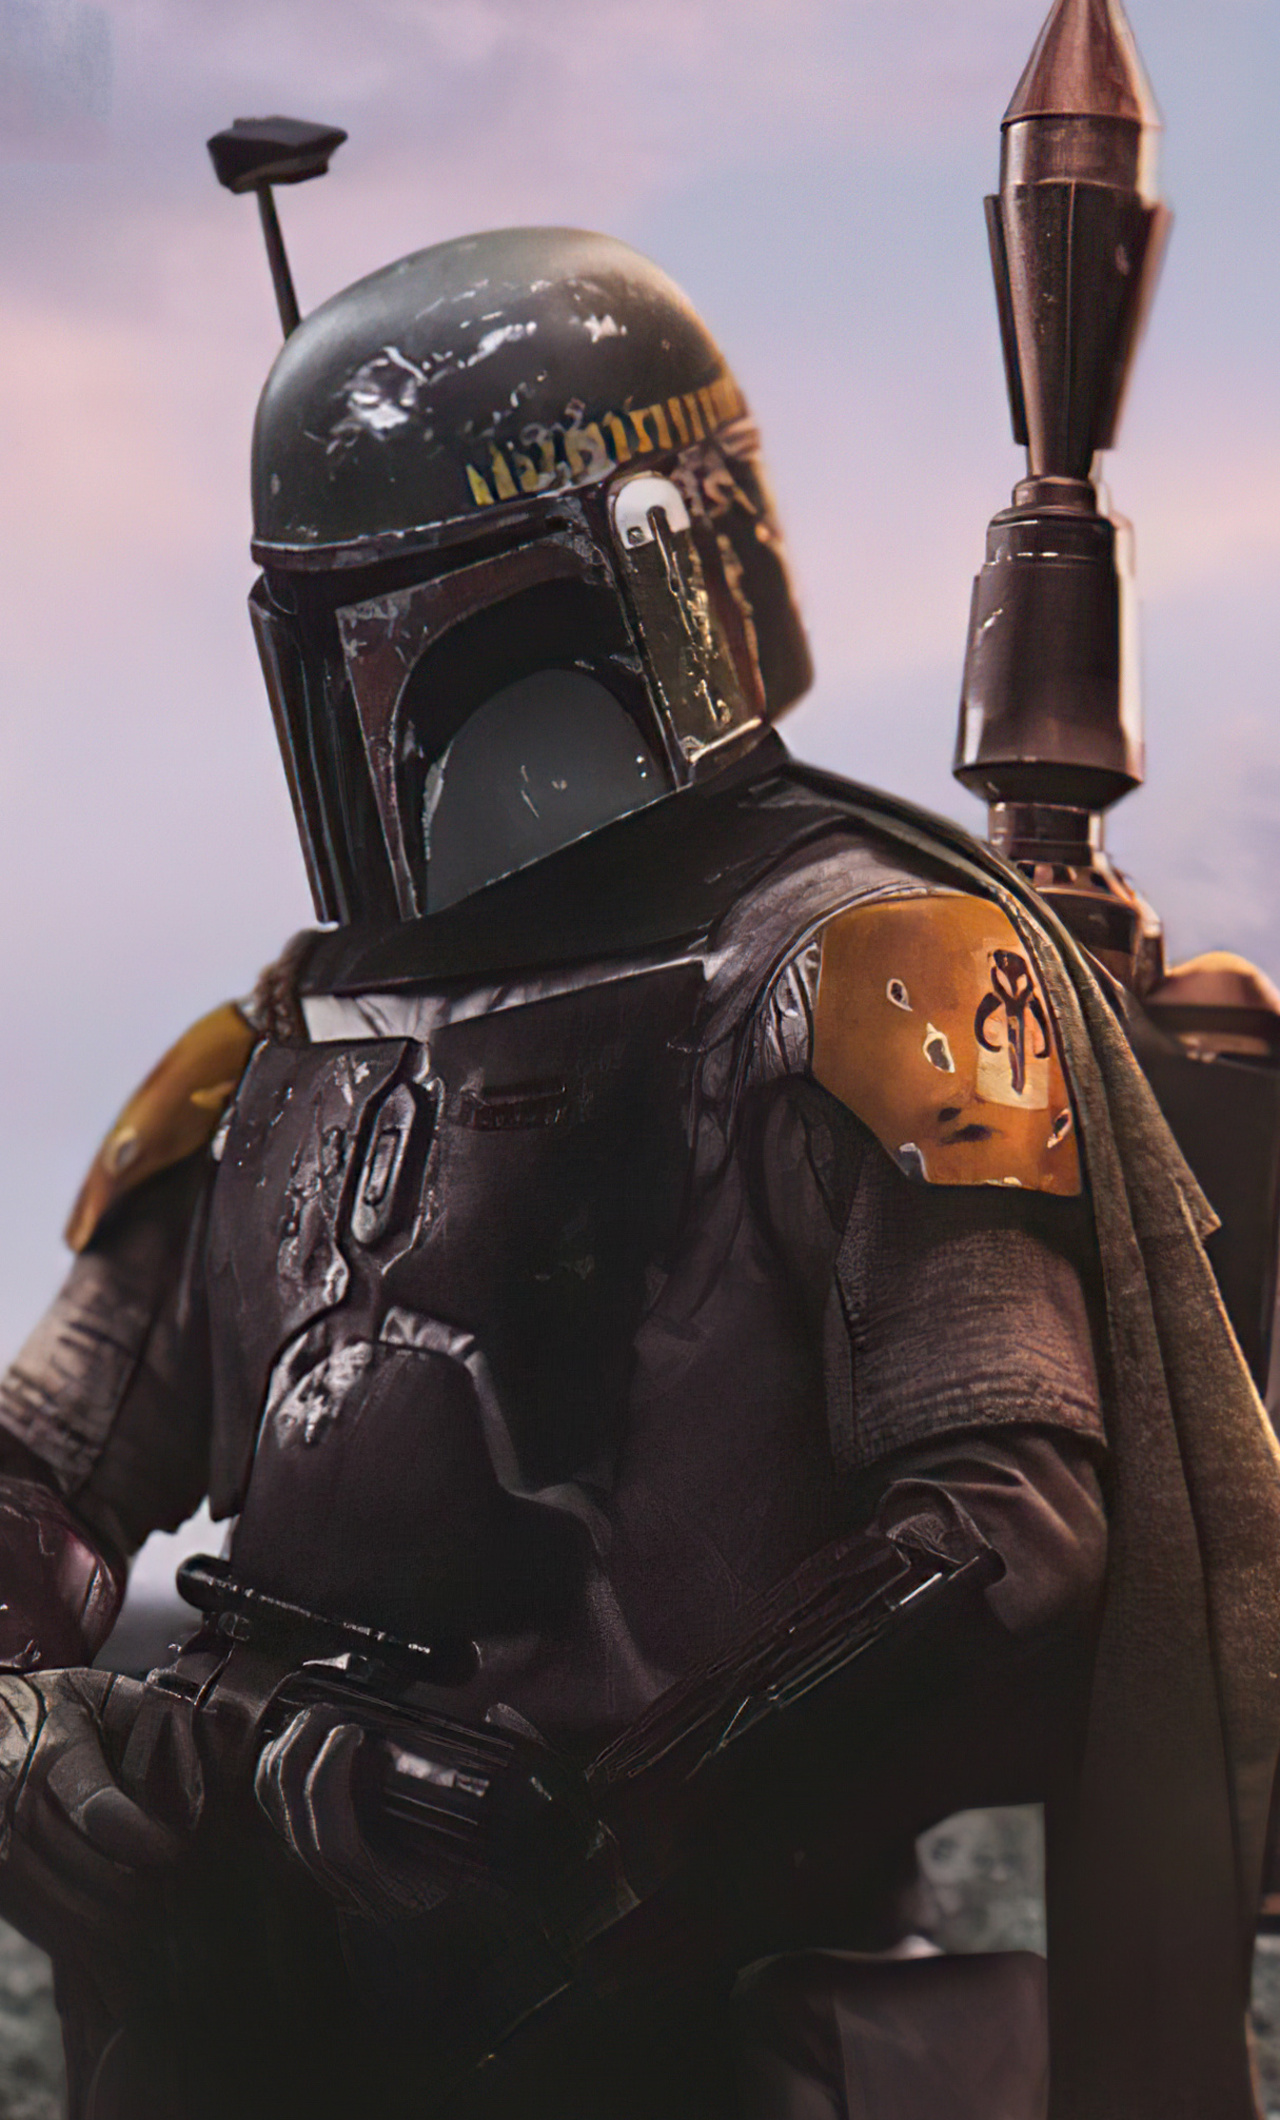 1280x2120 The Mandalorian Season 2 4k Iphone 6 Hd 4k Wallpapers Images Backgrounds Photos And Pictures